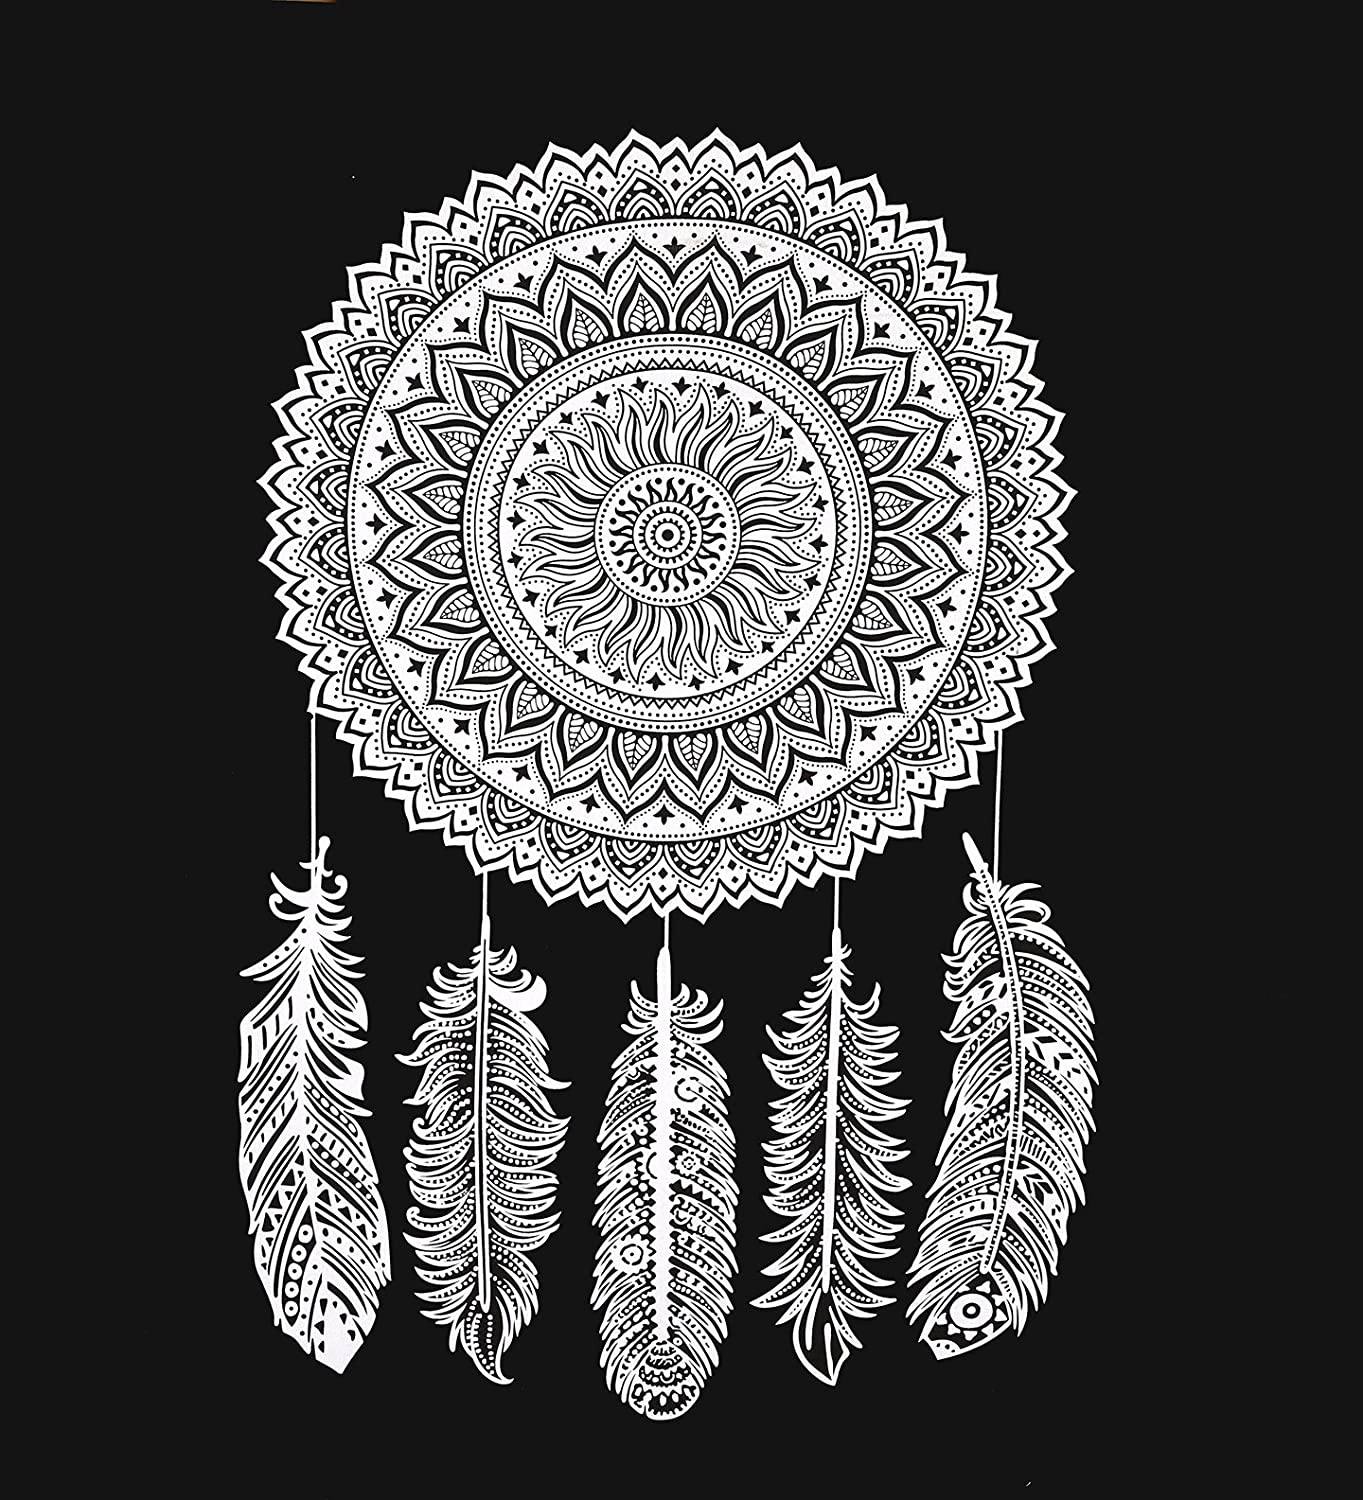 Black and white tapestry dreamcatcher wall hanging tapestry mandala tapestries indian traditional cotton printed bohemian hippie large wall art by